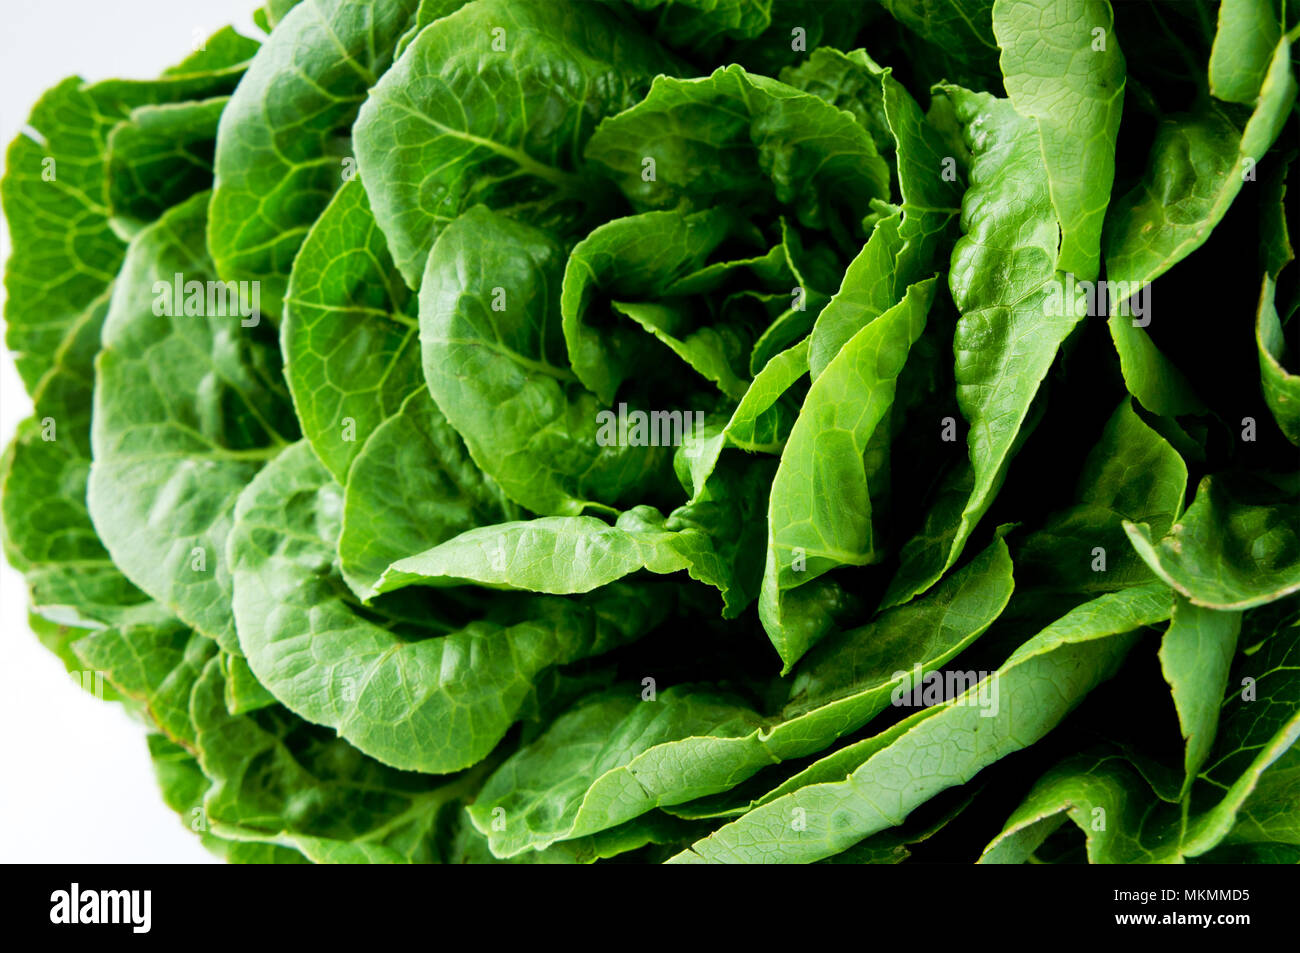 Fresh Green Lettuce. Healthy food. Rich in vitamins and minerals. - Stock Image